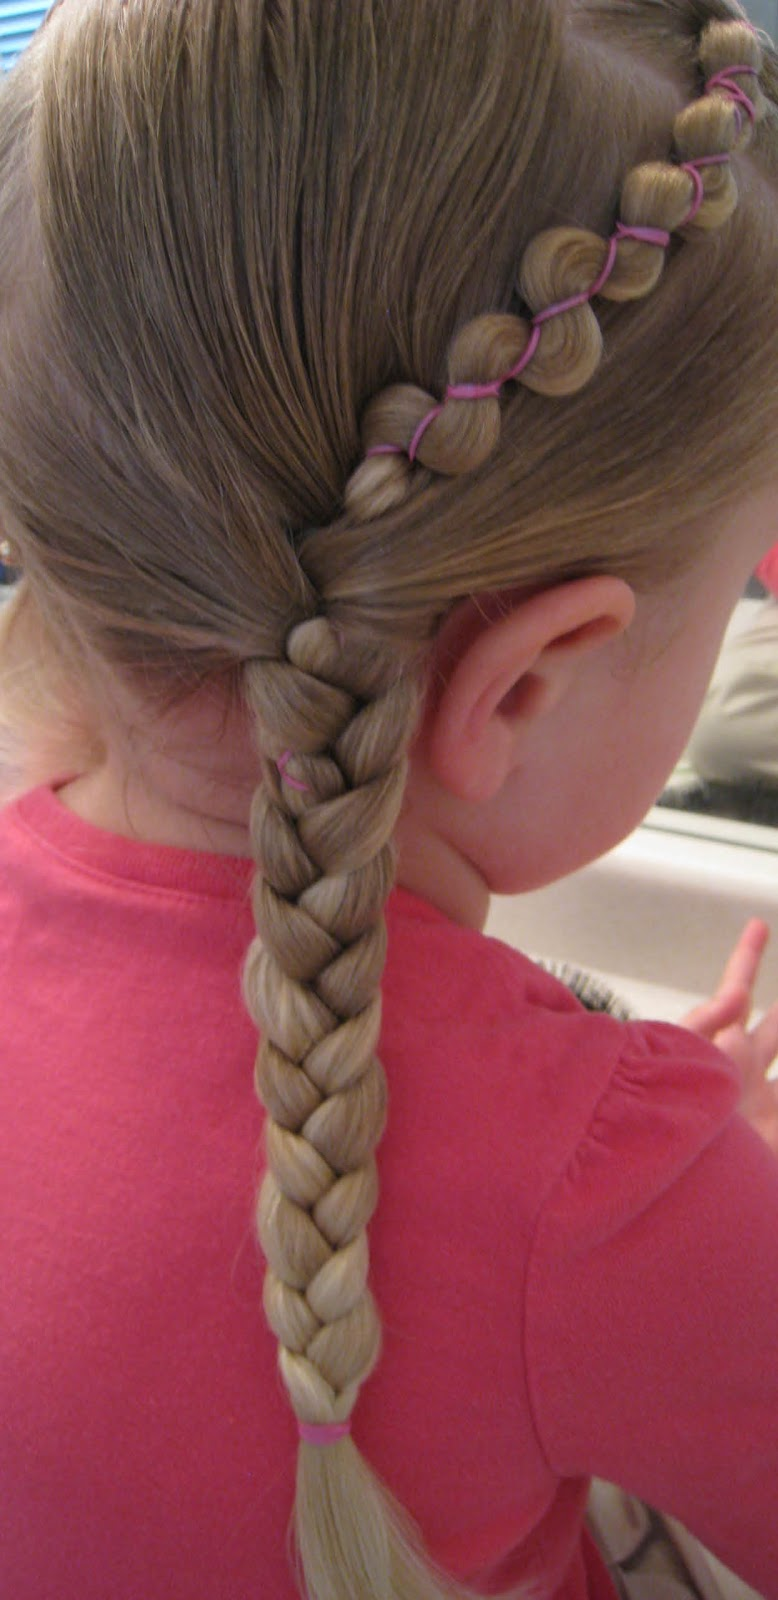 Popular Hairstylers Braids With Rubber Bands